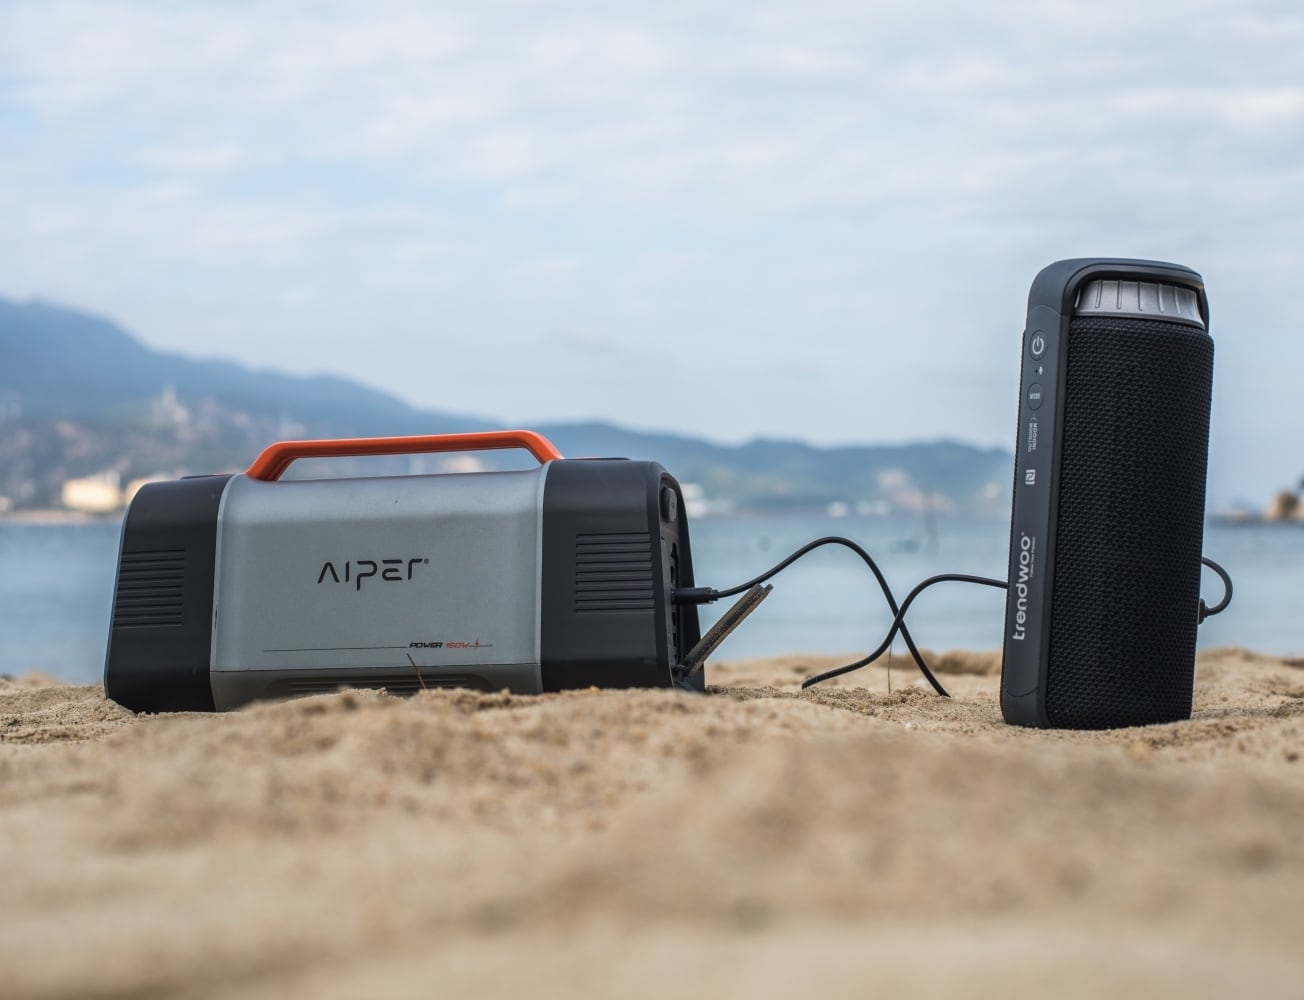 Aiper Flash 150W Reliable Portable Power Station